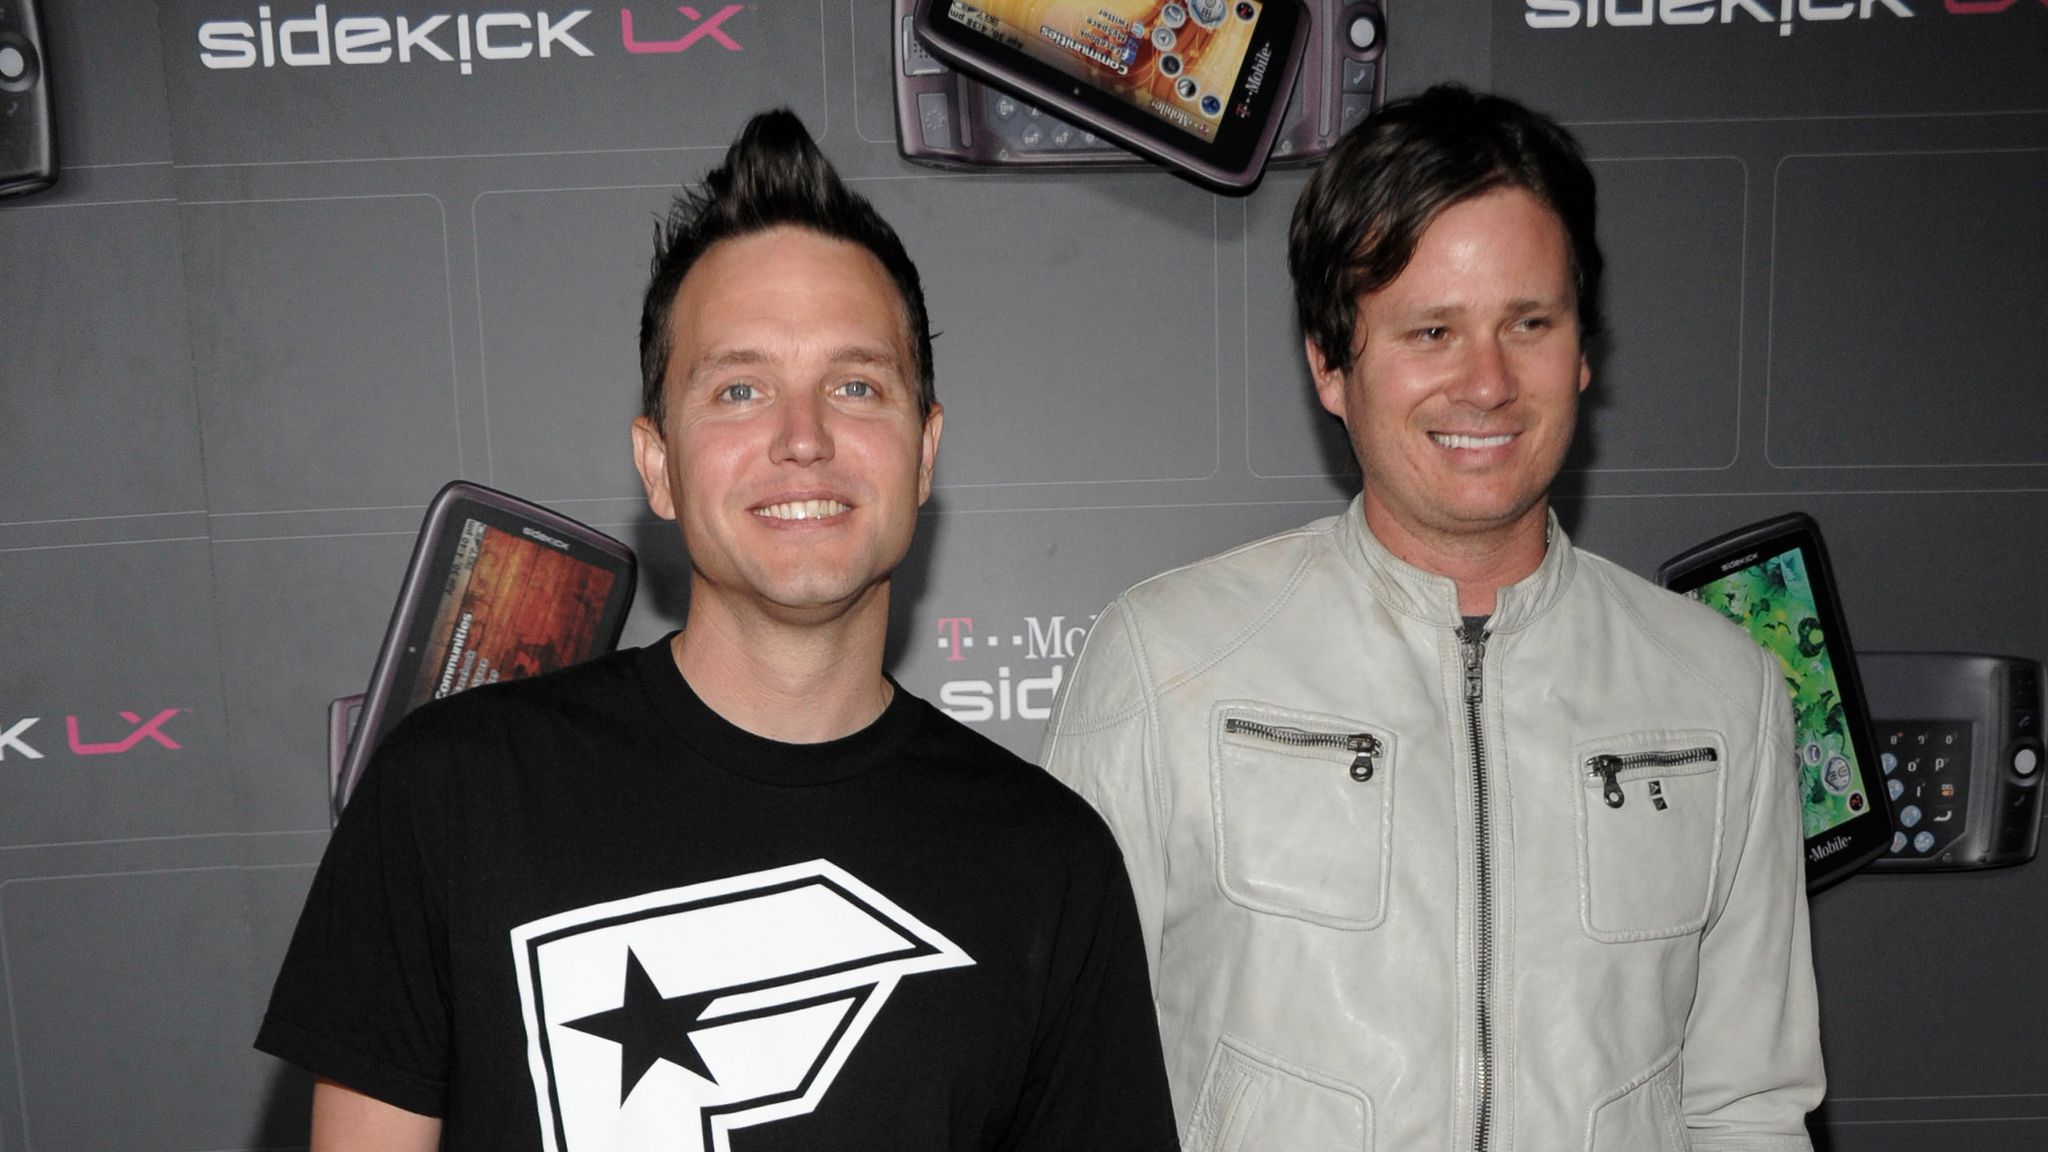 Blink-182 star Mark Hoppus is 'almost done' with cancer treatment,  ex-bandmate Tom DeLonge says | Ents & Arts News